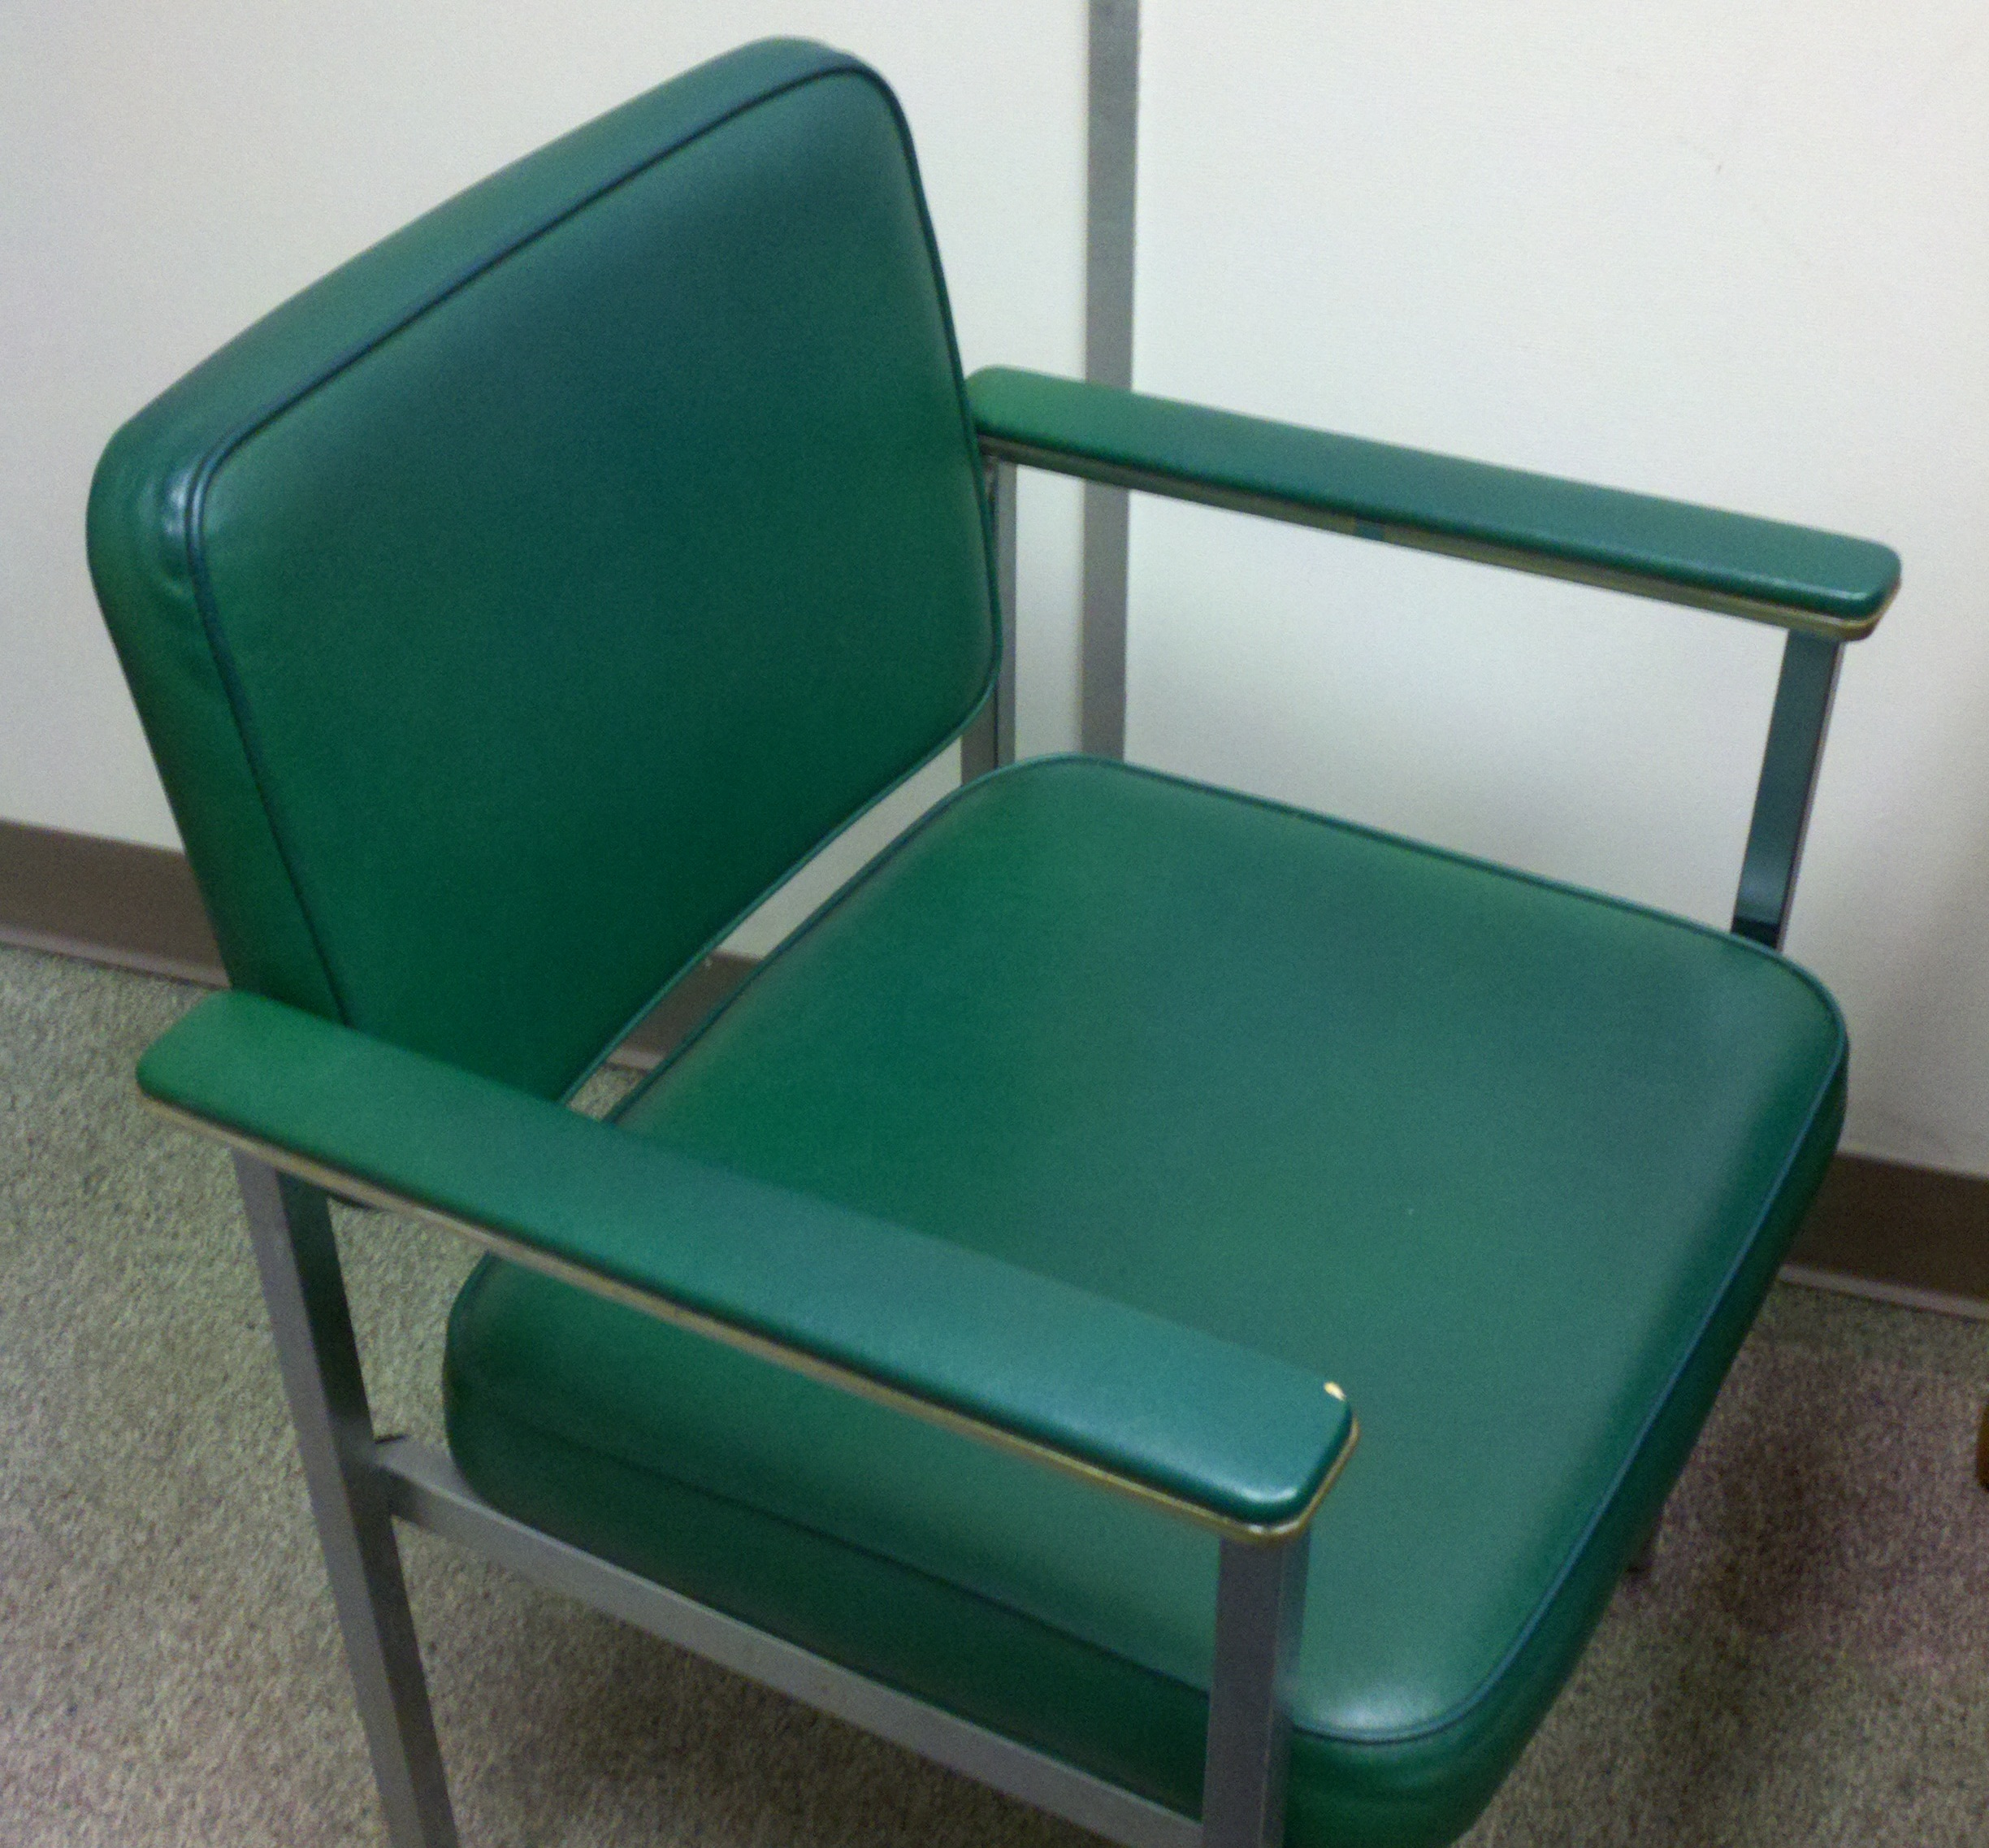 File Awesome green chair Wikimedia mons